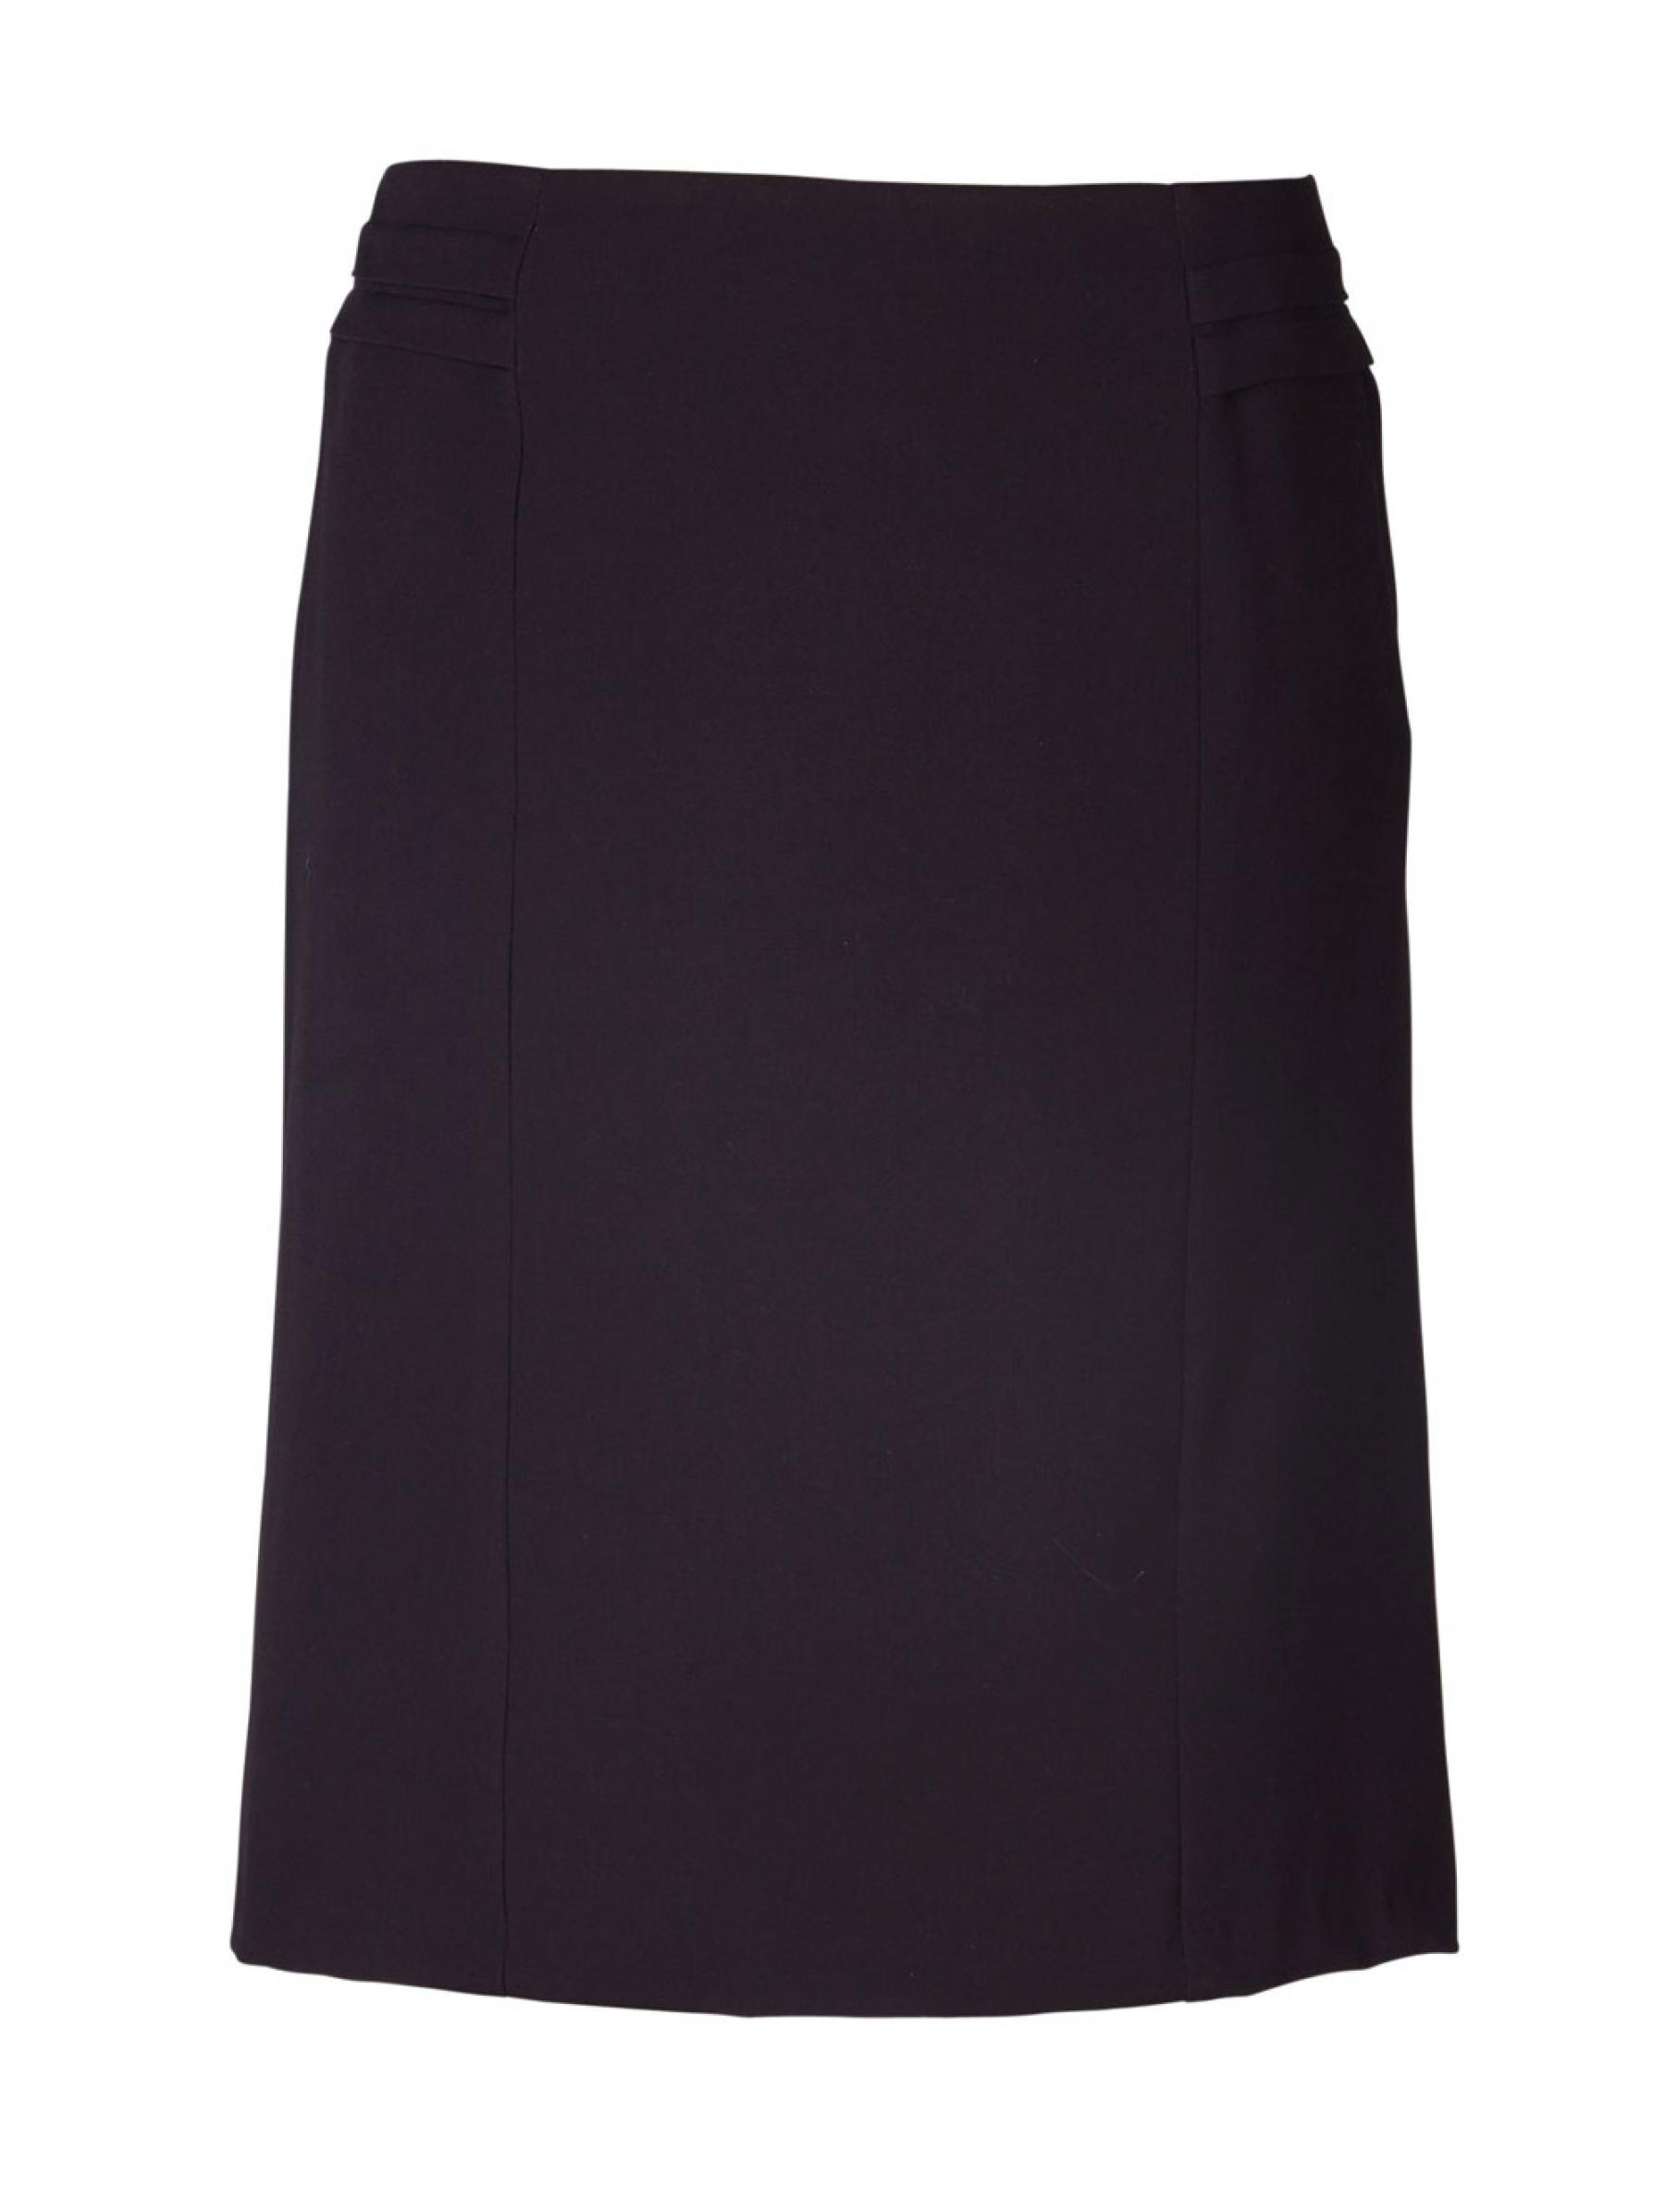 Sonya 505 Pencil Skirt - Black